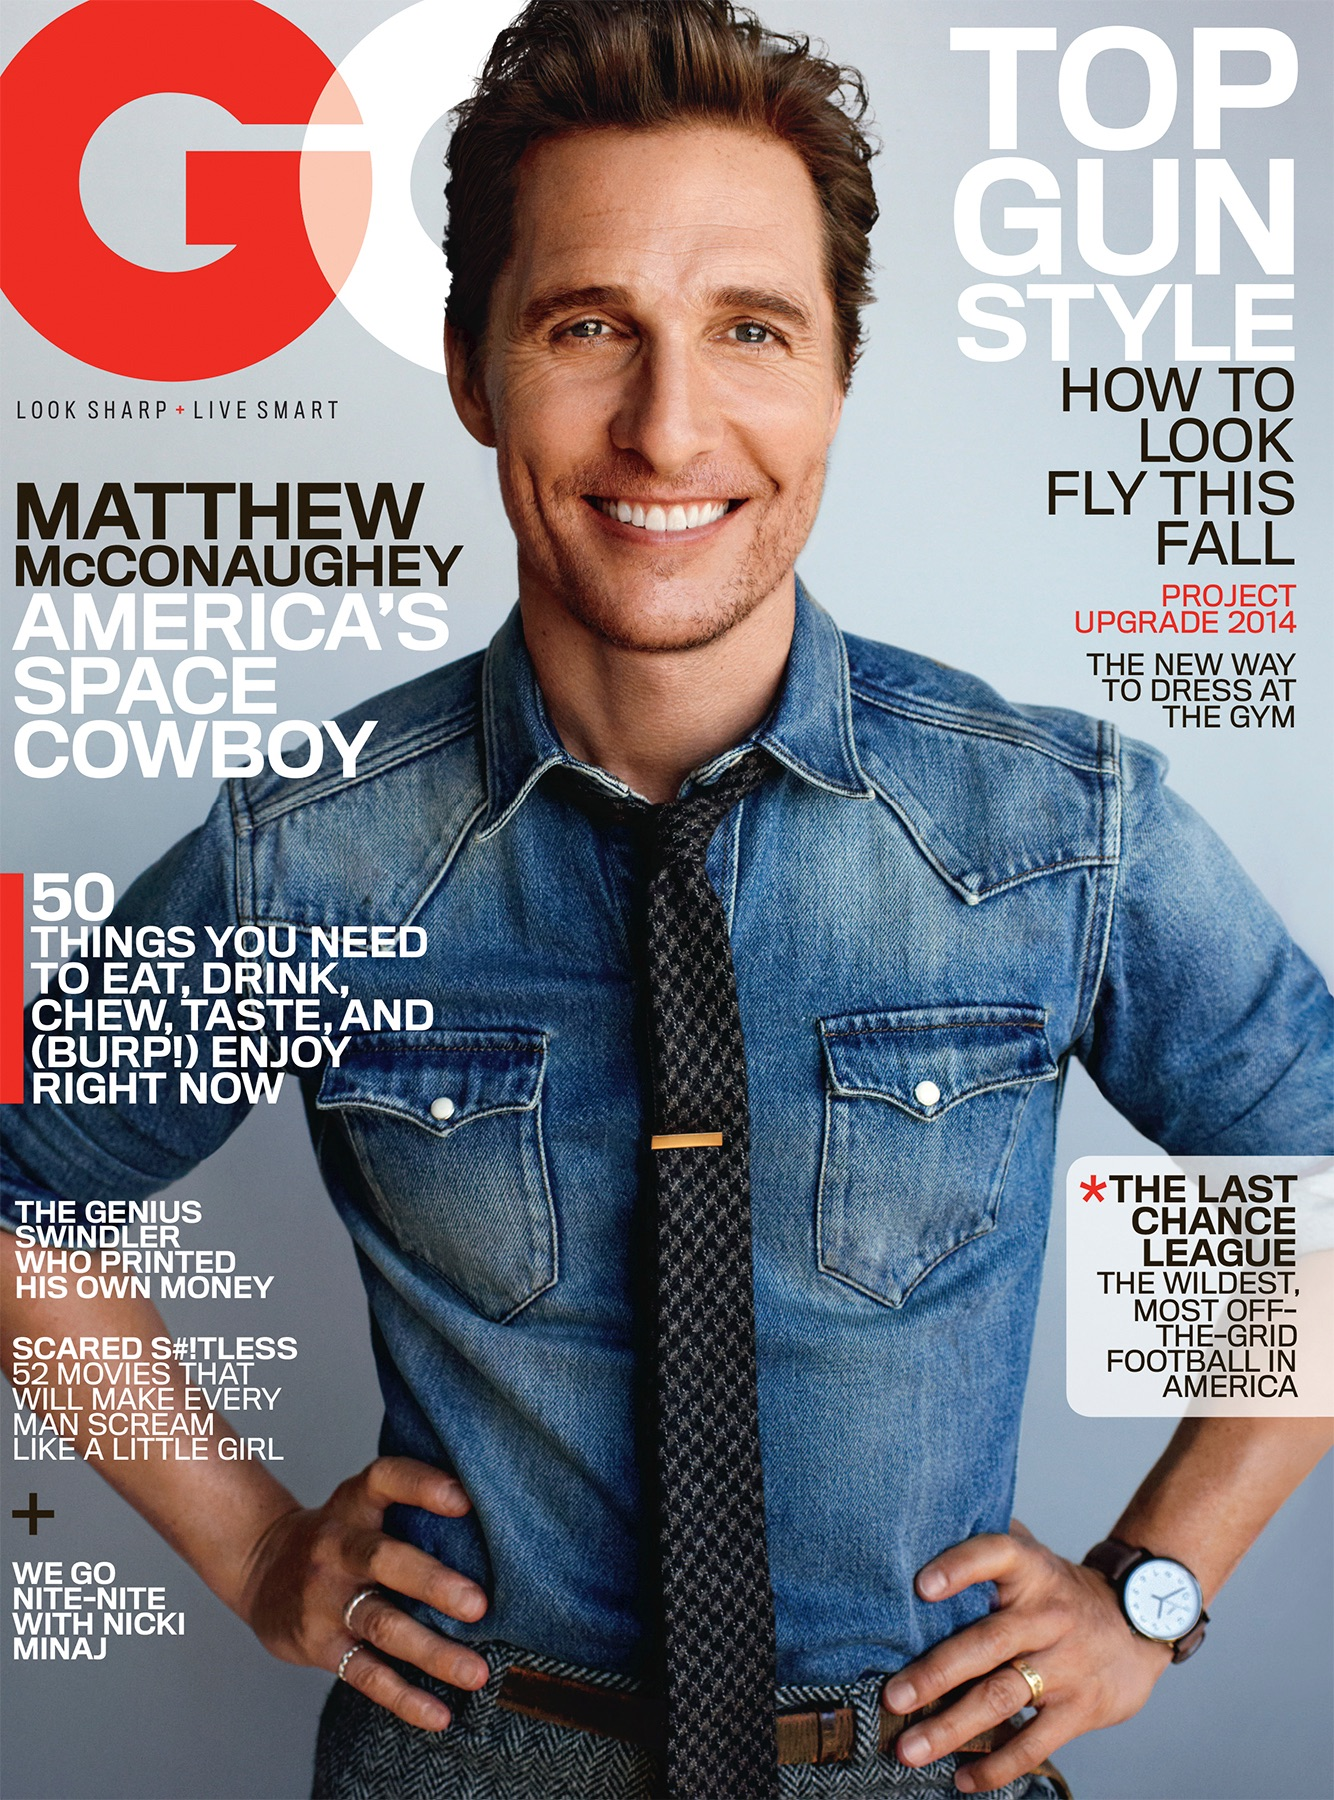 Matthew McConaughey Covers GQ November 2014 + Wears Tweed Suits for Photo Shoot